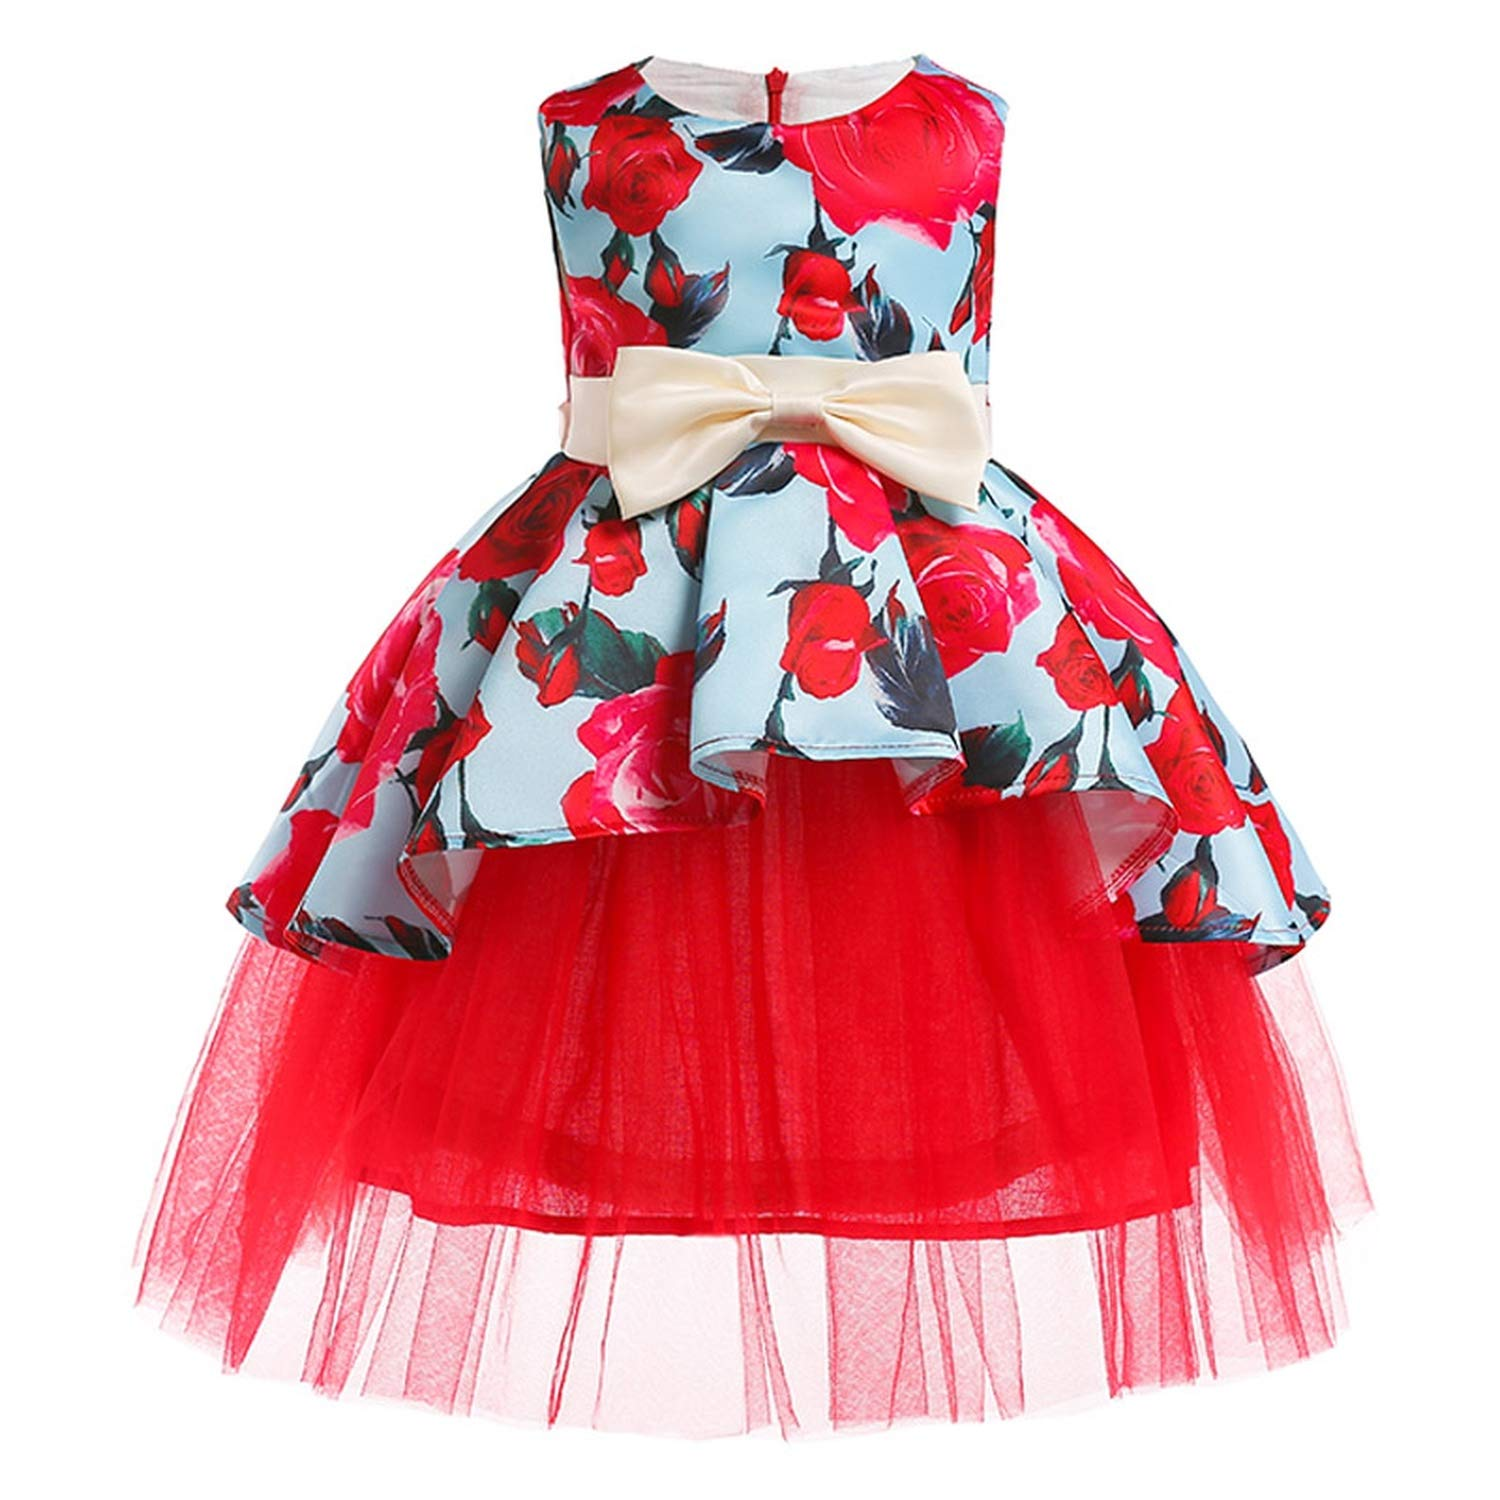 Girls Dress Summer Kids Dresses for Girl Princess Children Baby Tutu 2 3 4 5 6 7 8 9 10 Years,As Picture10,9 by Gooding Day (Image #3)